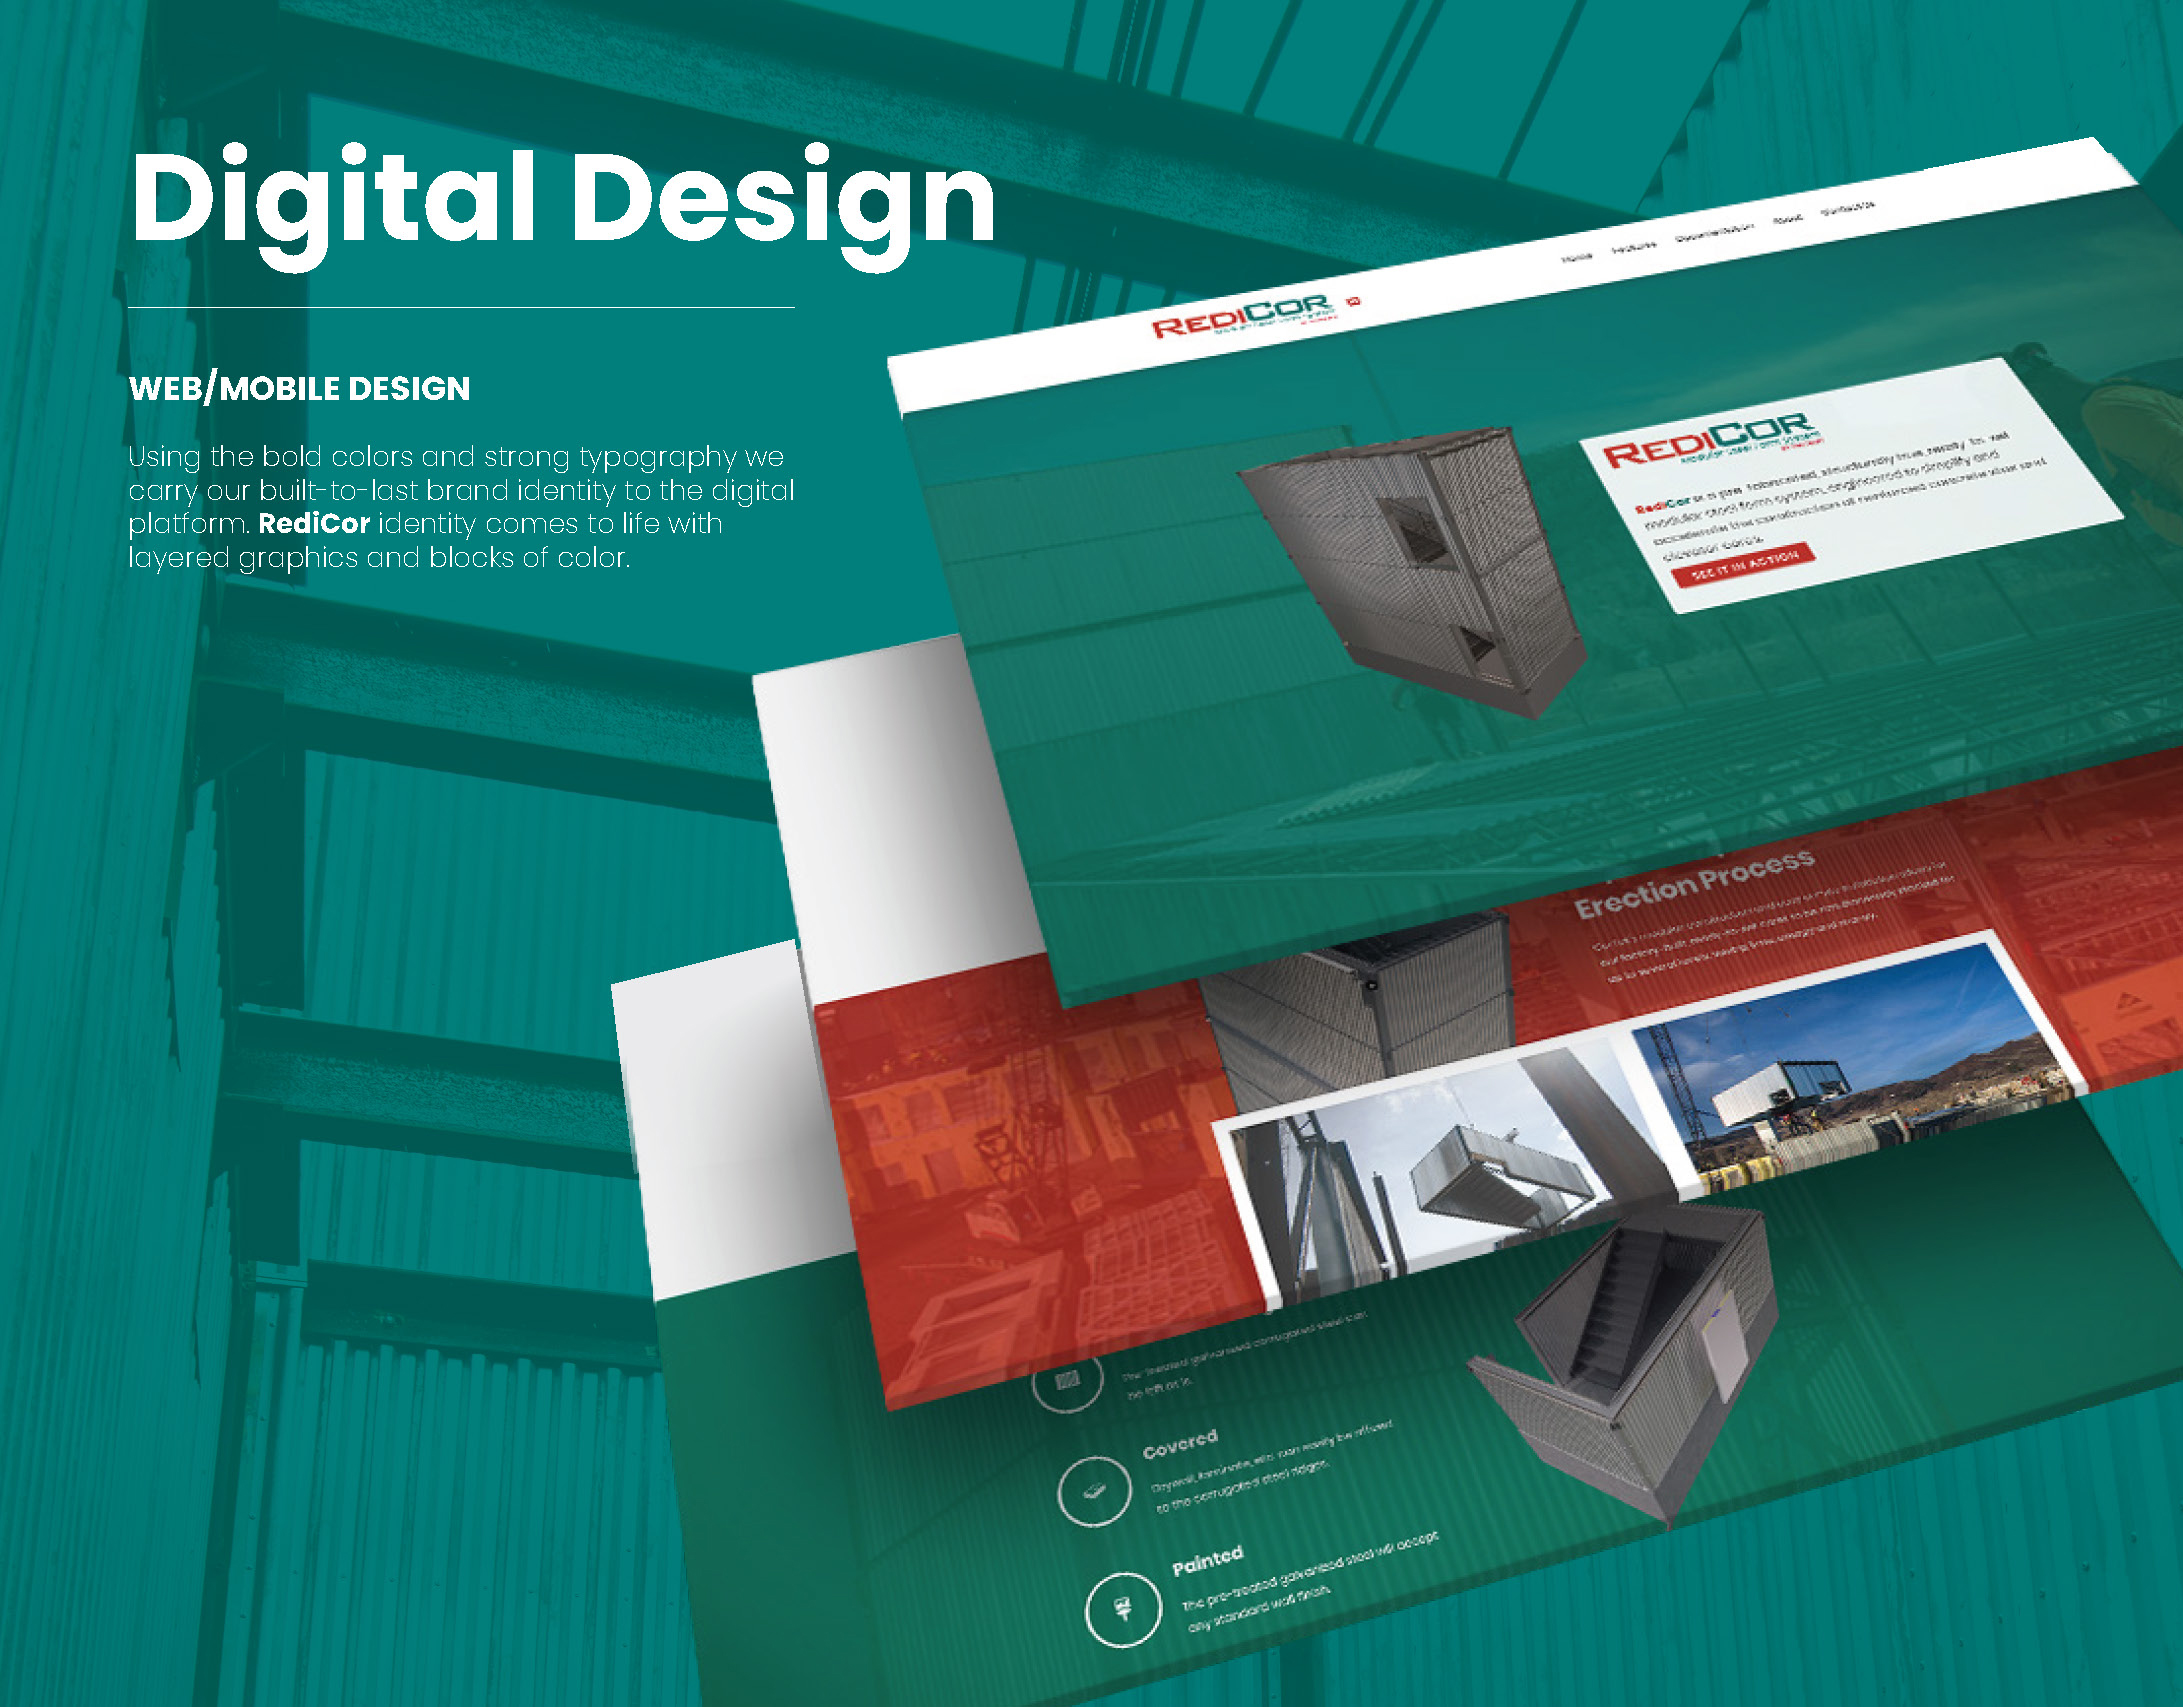 Graphic featuring RediCor design and brand identity